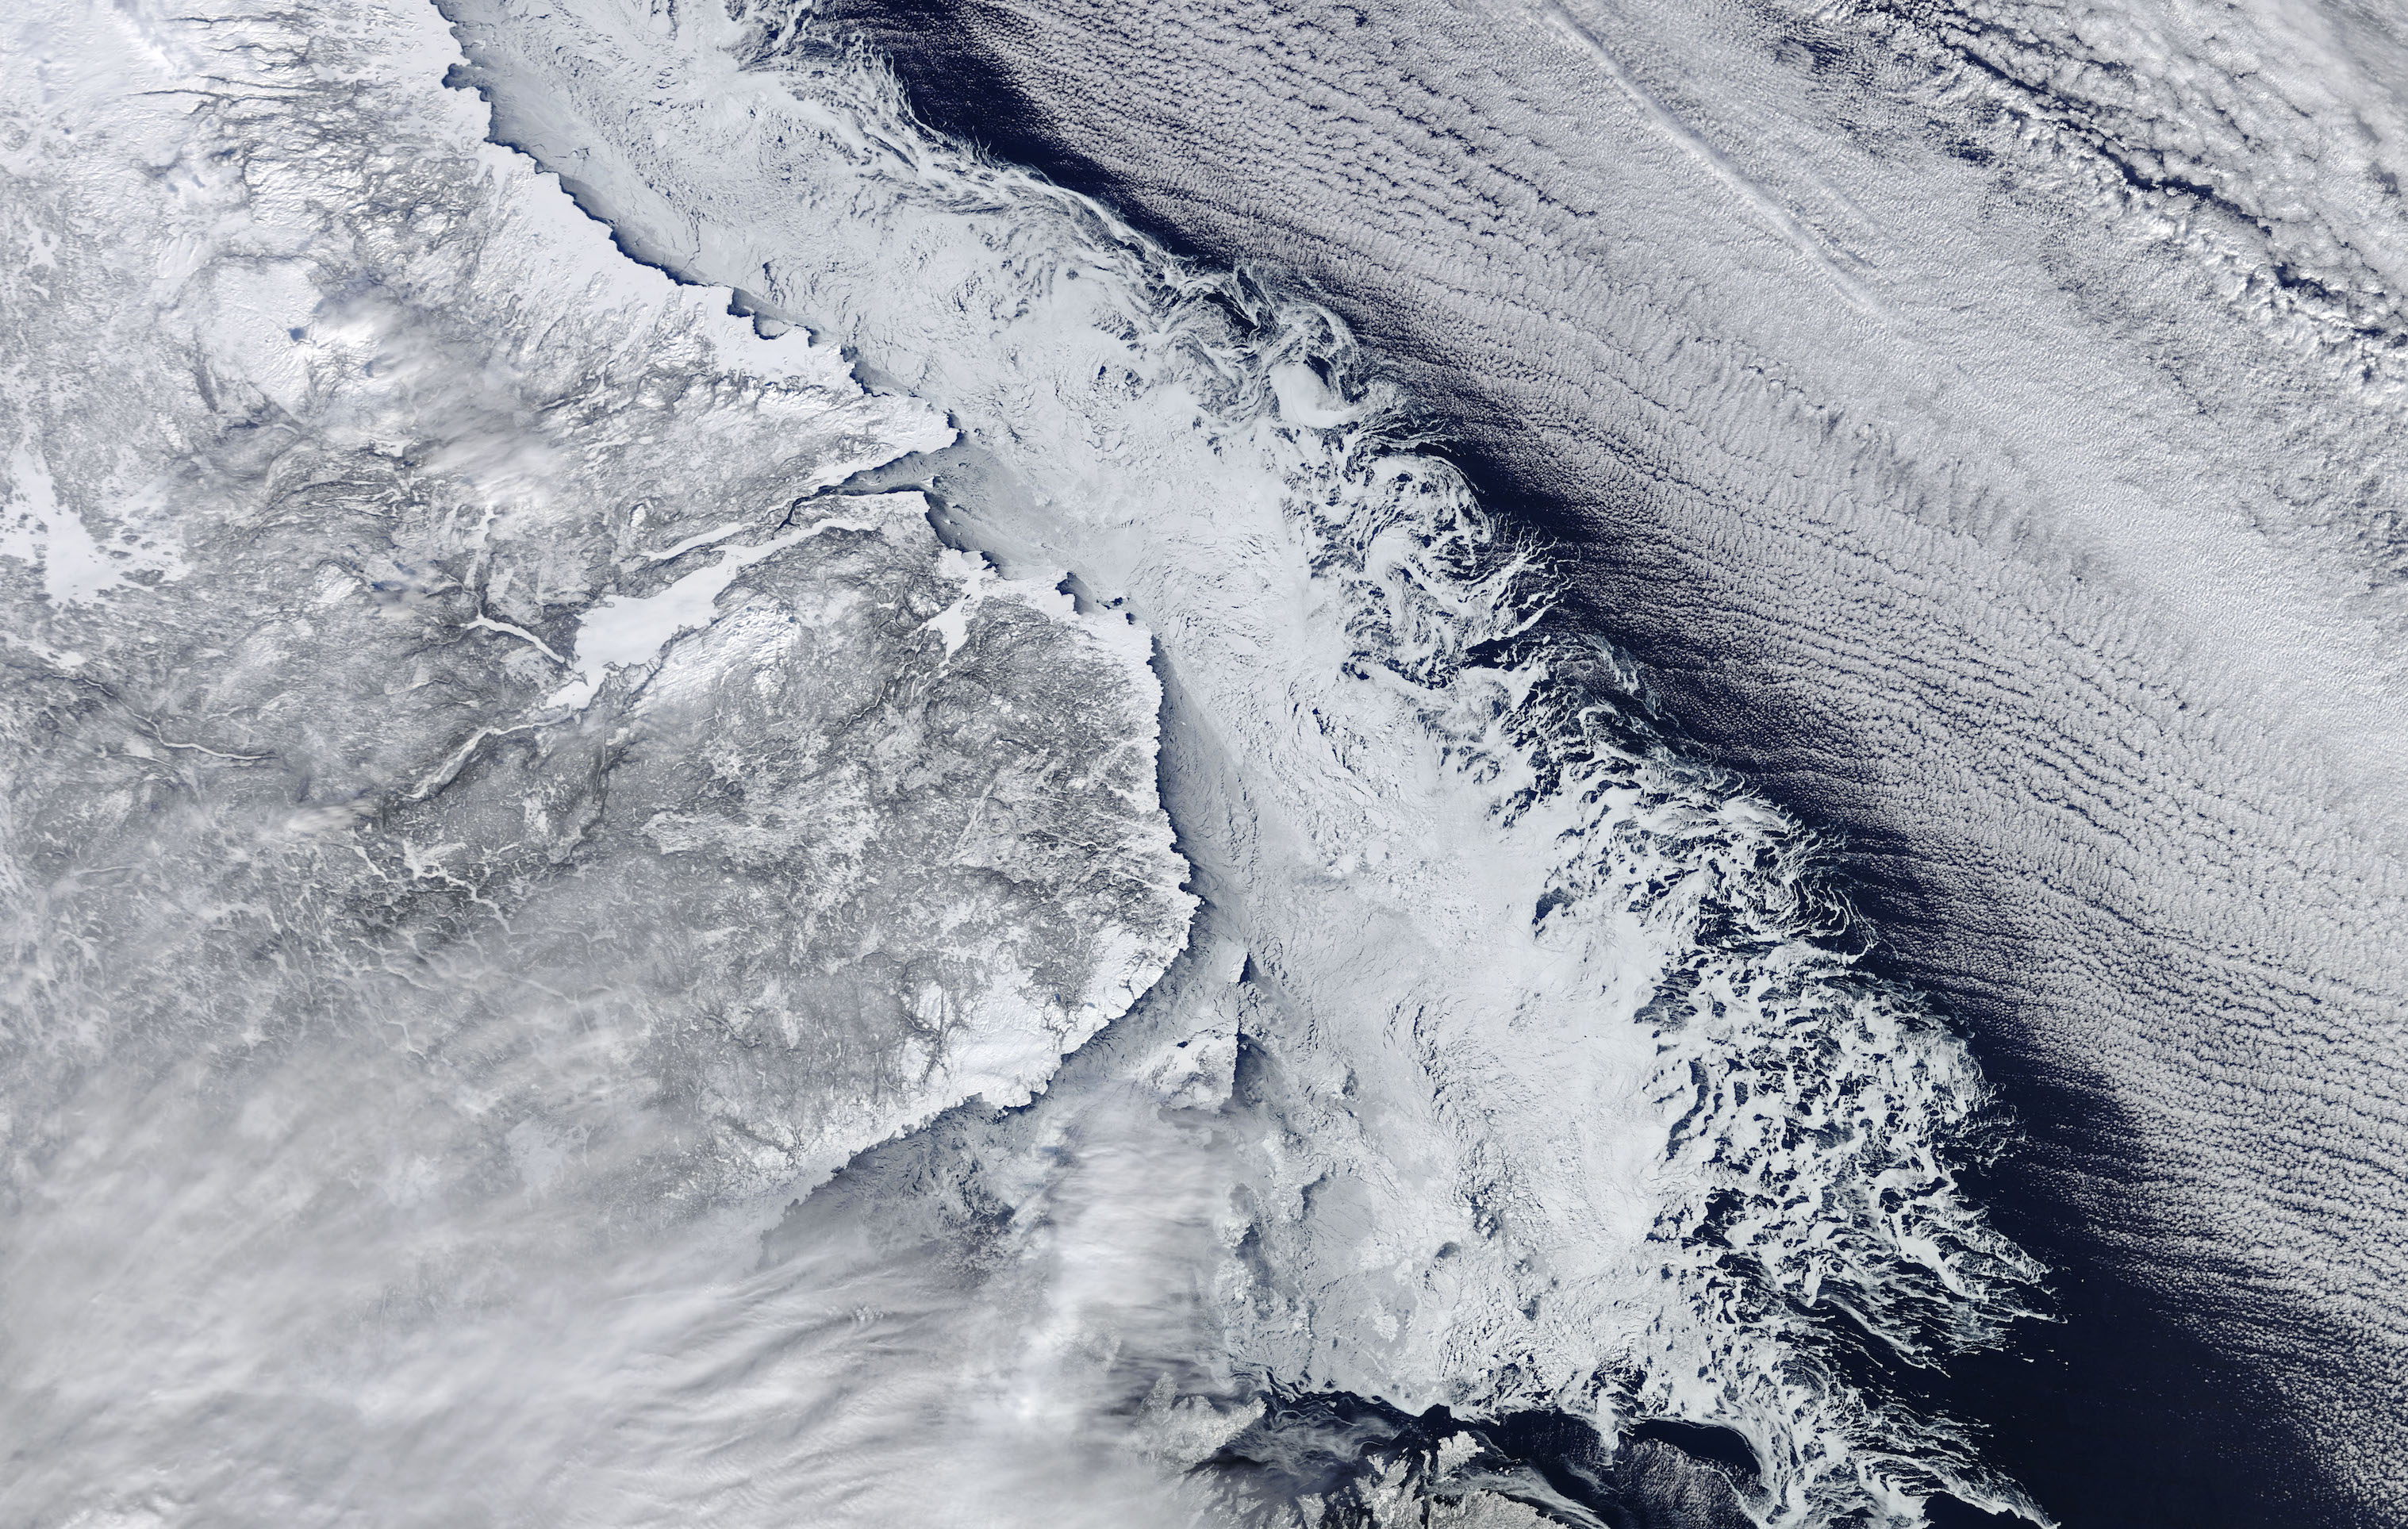 Today's Image of the Day comes from the NASA Earth Observatory and features a look at land ice and sea ice converging along the coast of Newfoundland.